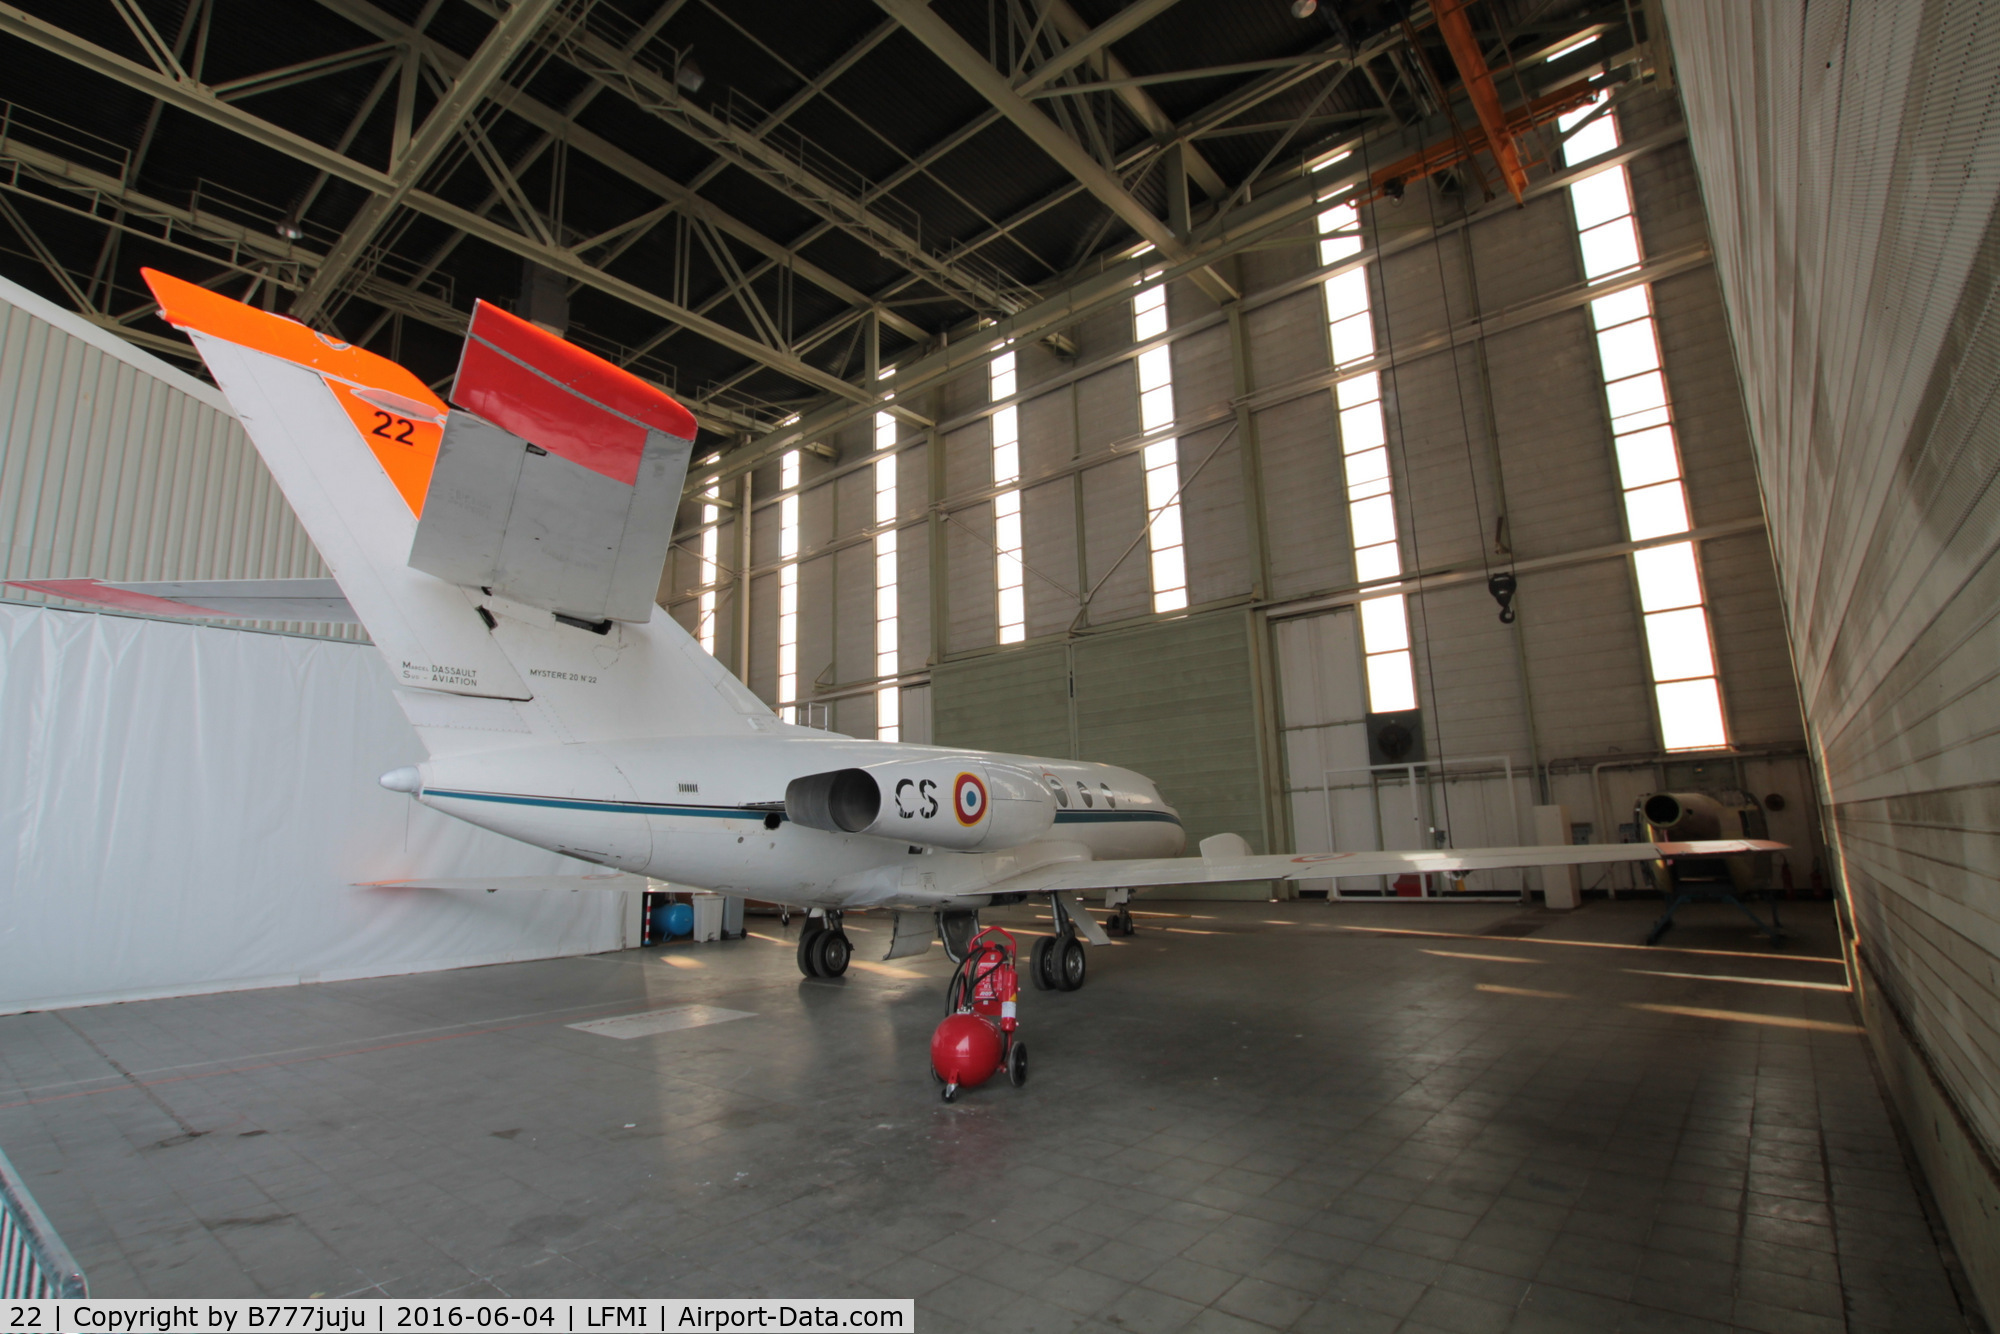 22, Dassault Falcon (Mystere) 20 C/N 22, at Istres